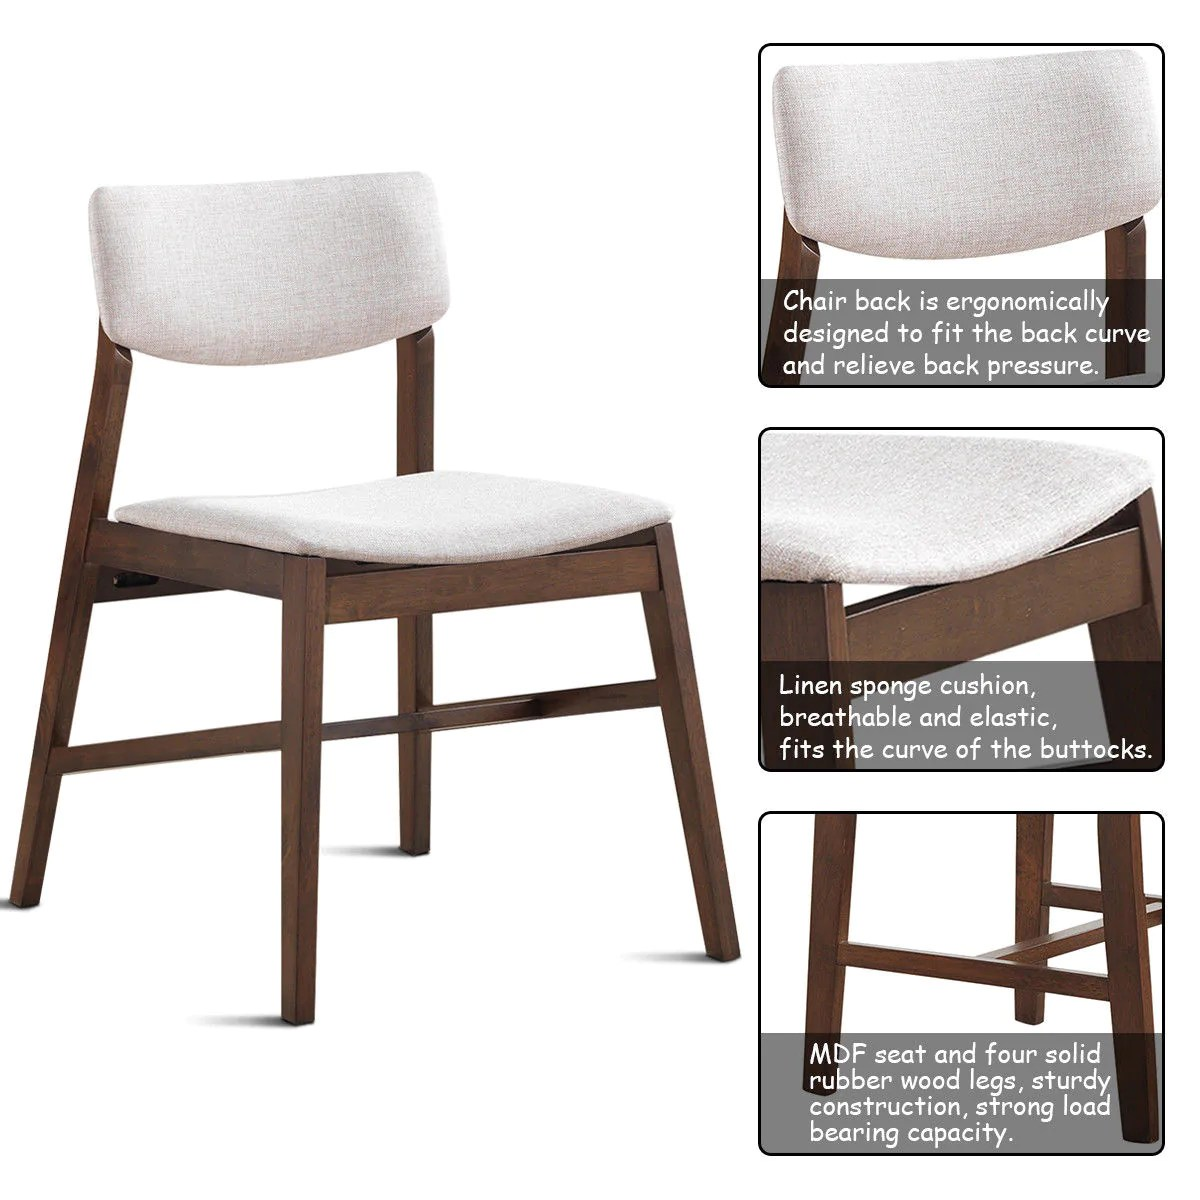 Ikea Bassalt Solid Wood Mid Century Modern Dining Chair White Products